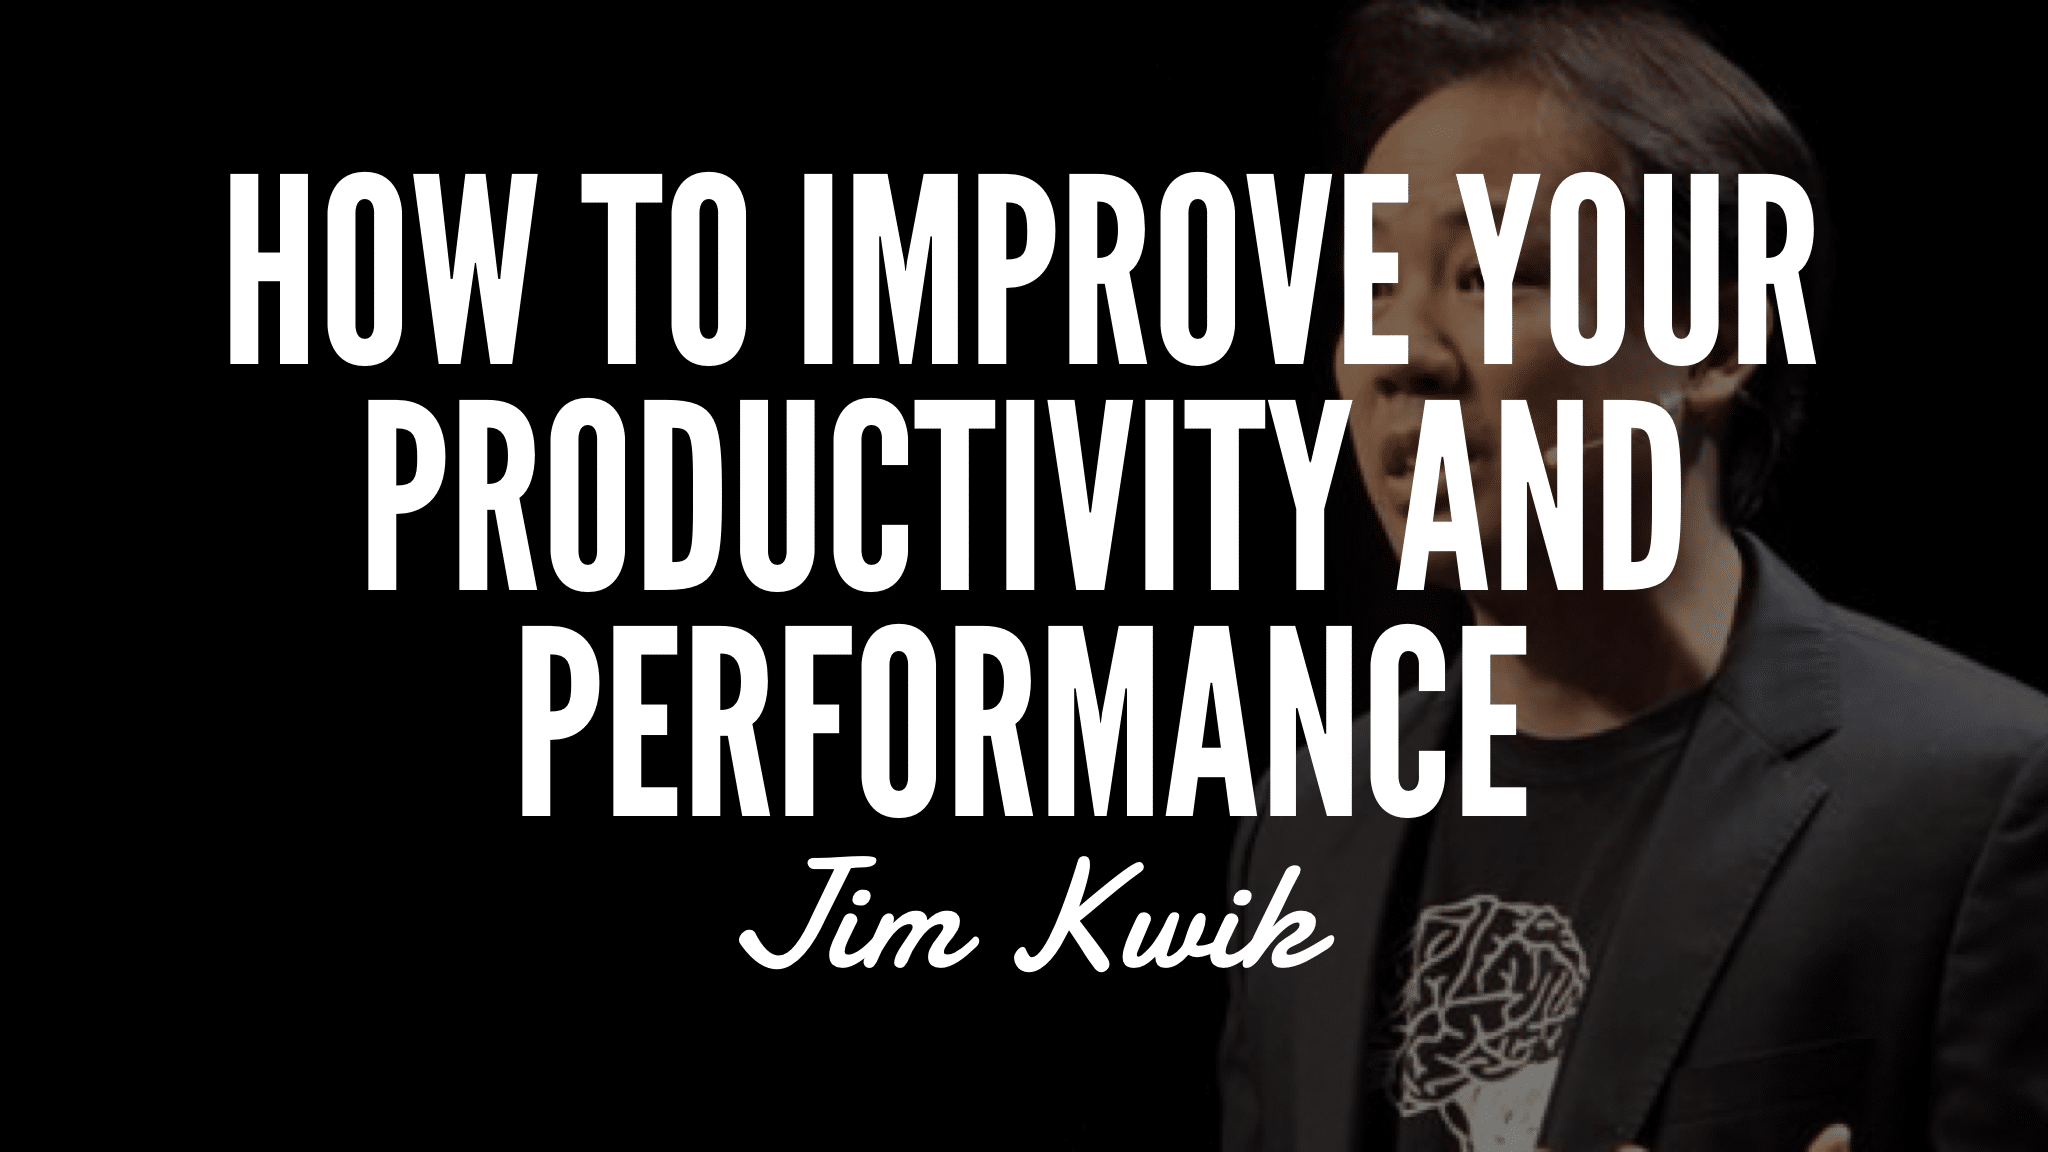 Improve your productivity and performance